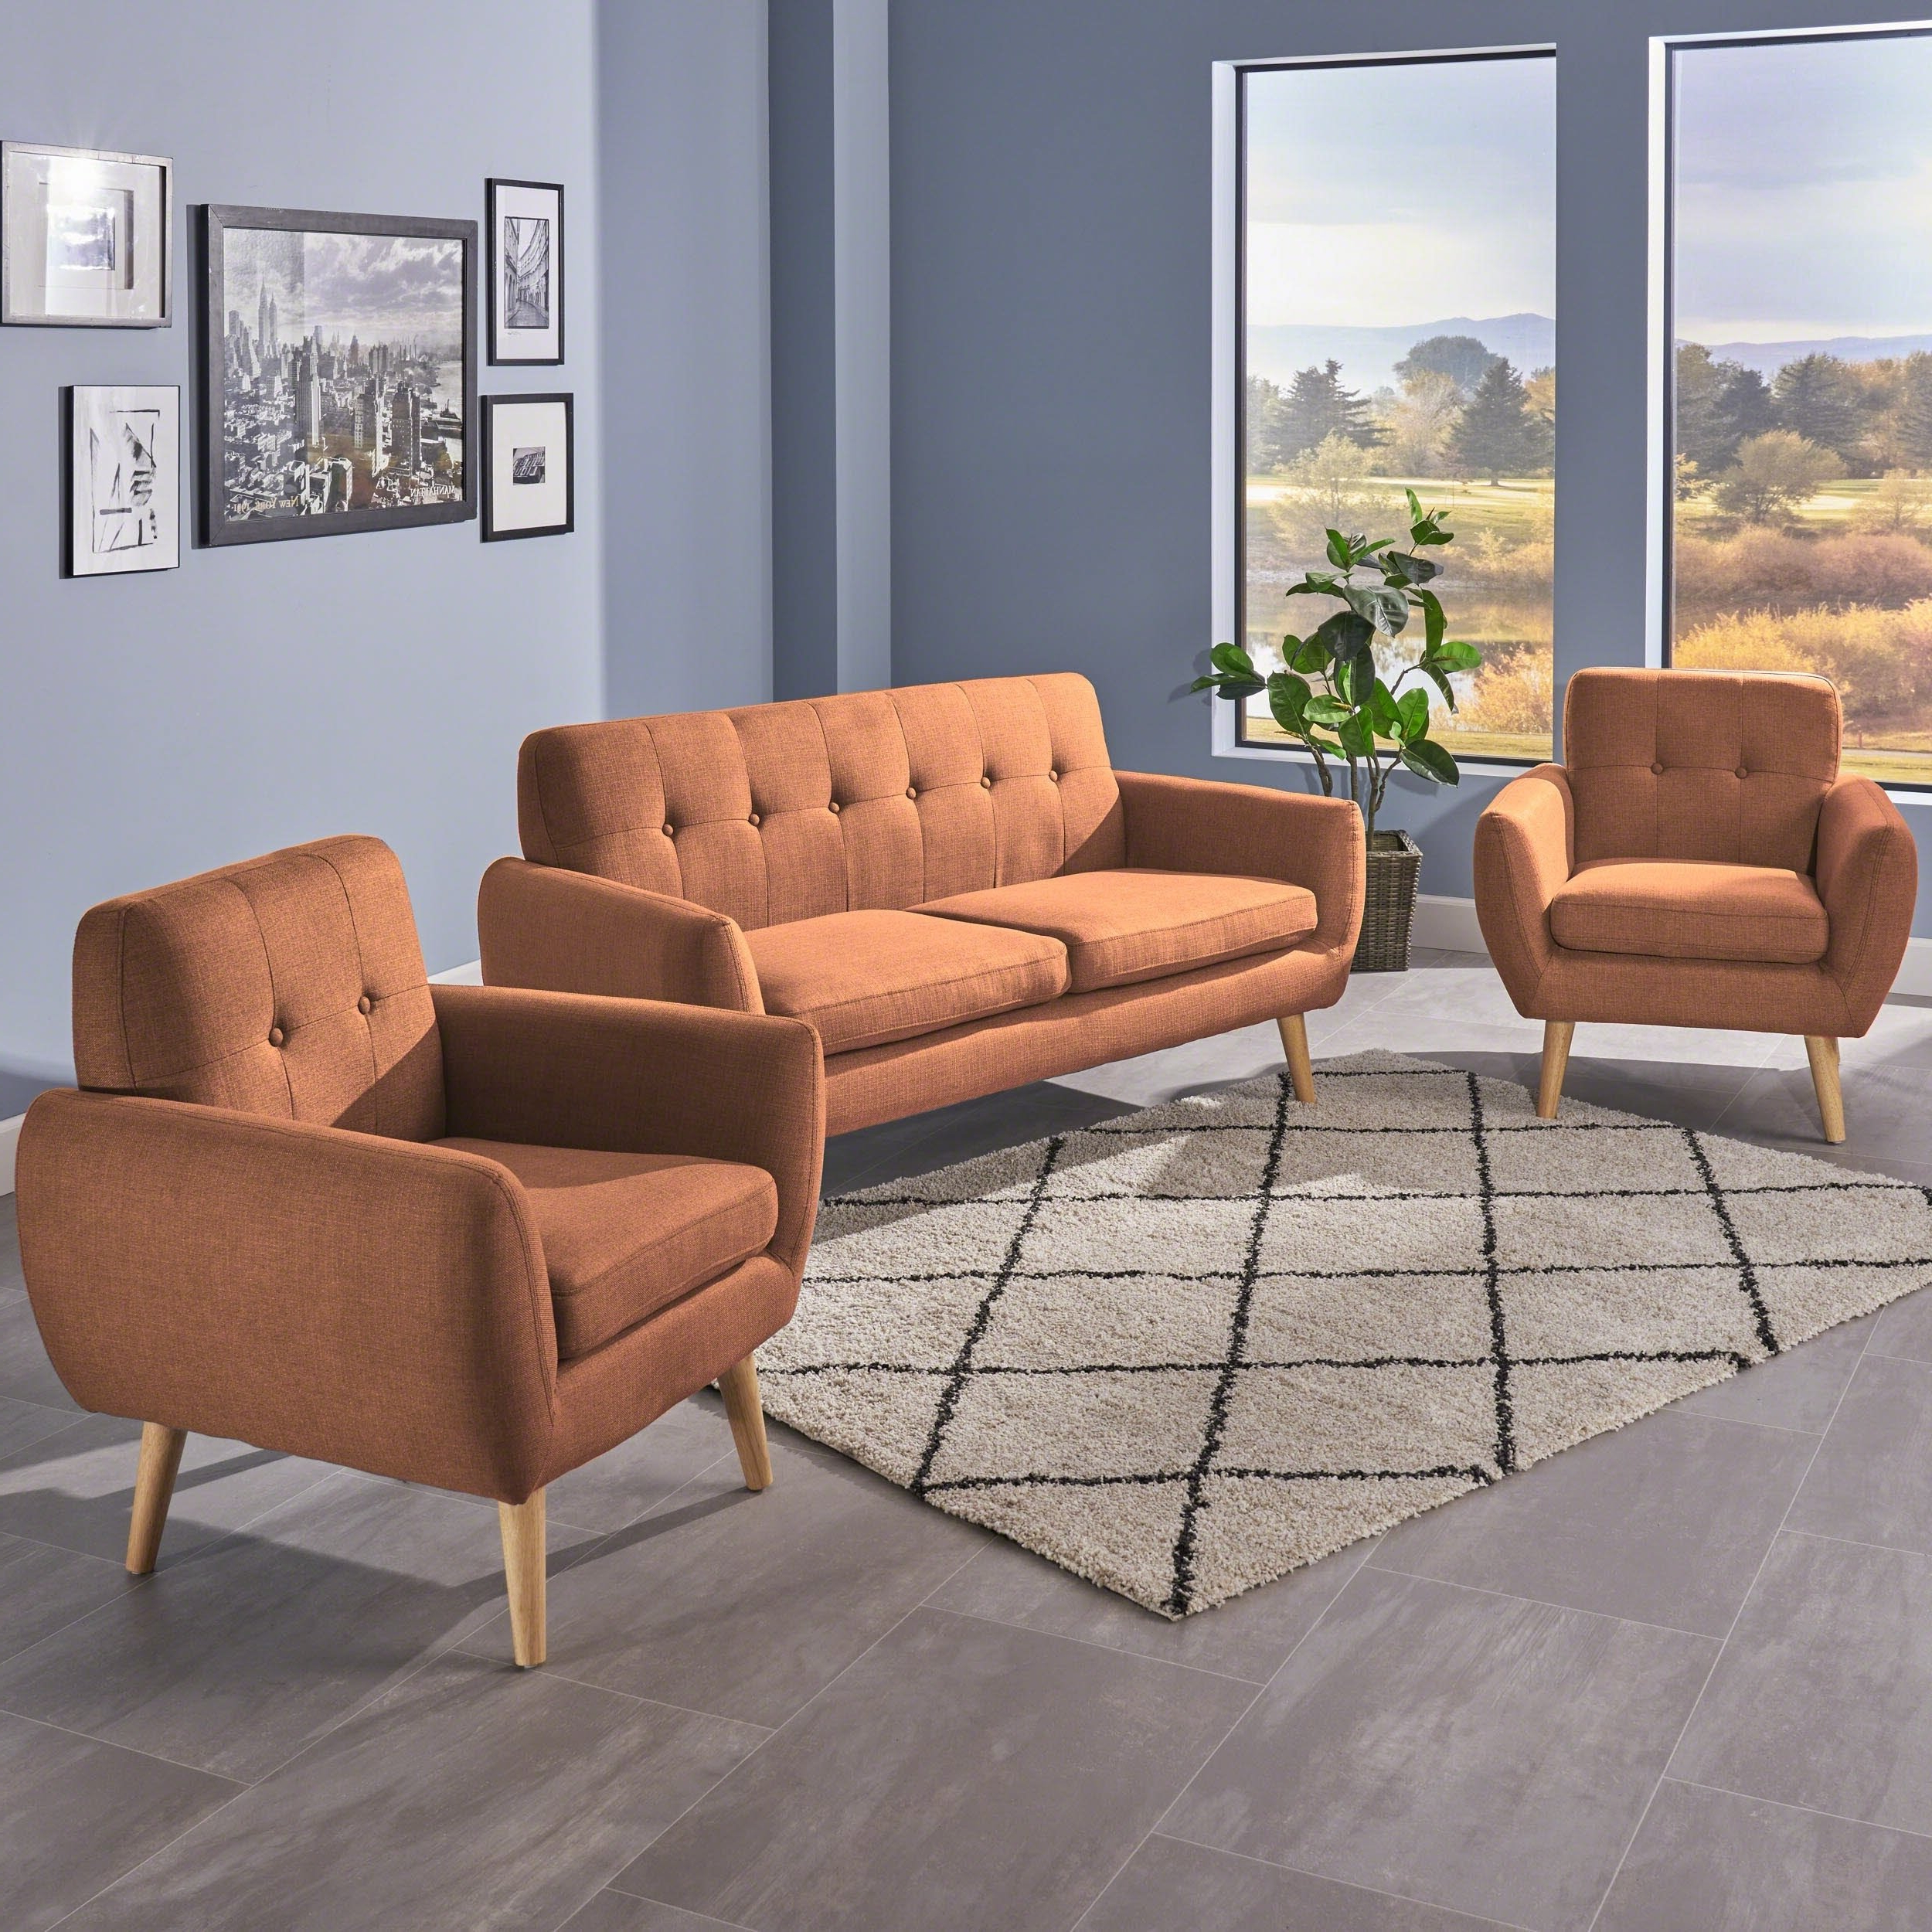 Josephine 2 Piece Sectionals With Raf Sofa Intended For Fashionable Shop Josephine Mid Century Modern 3 Piece Petite Fabric Chat Set (View 9 of 20)